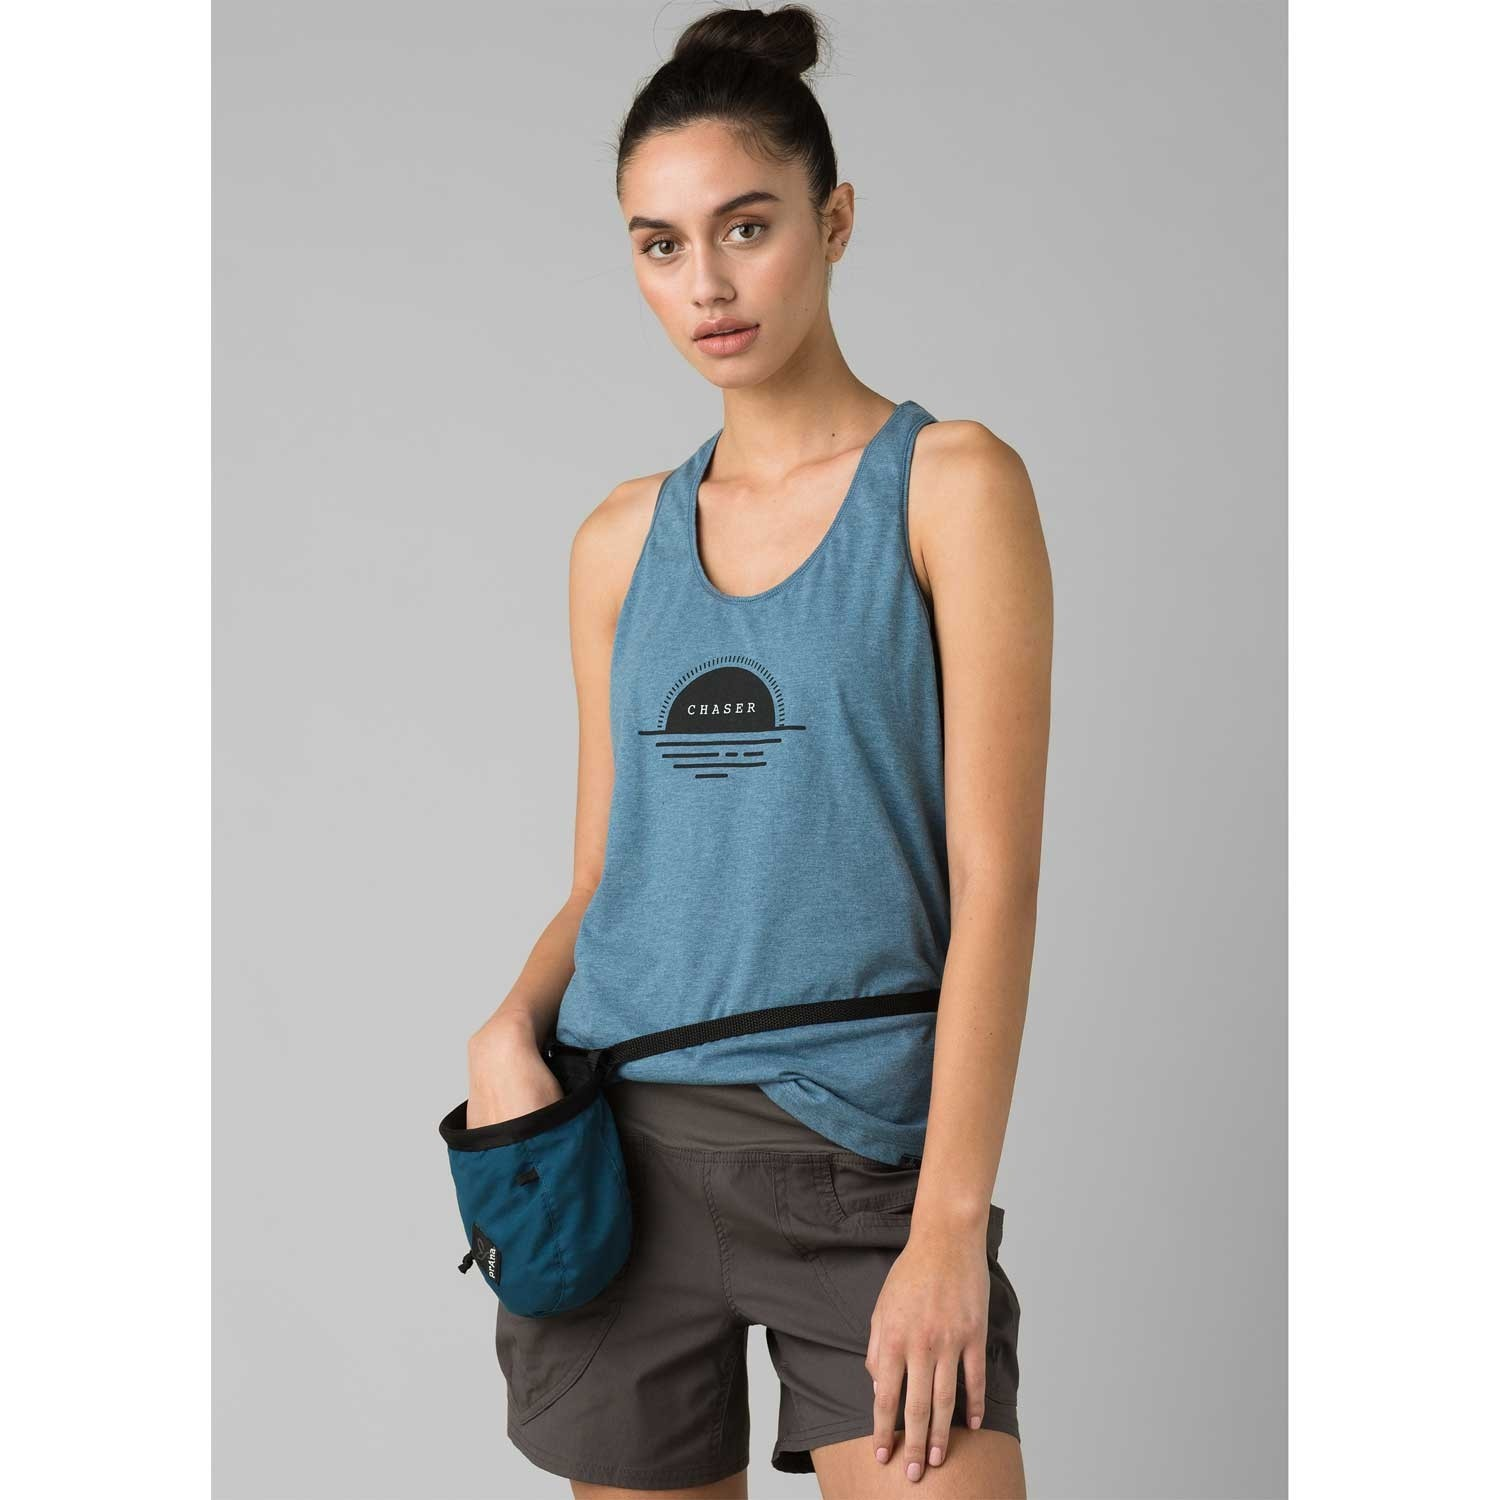 Prana Graphic Tank - Women's - Nickel Sunset